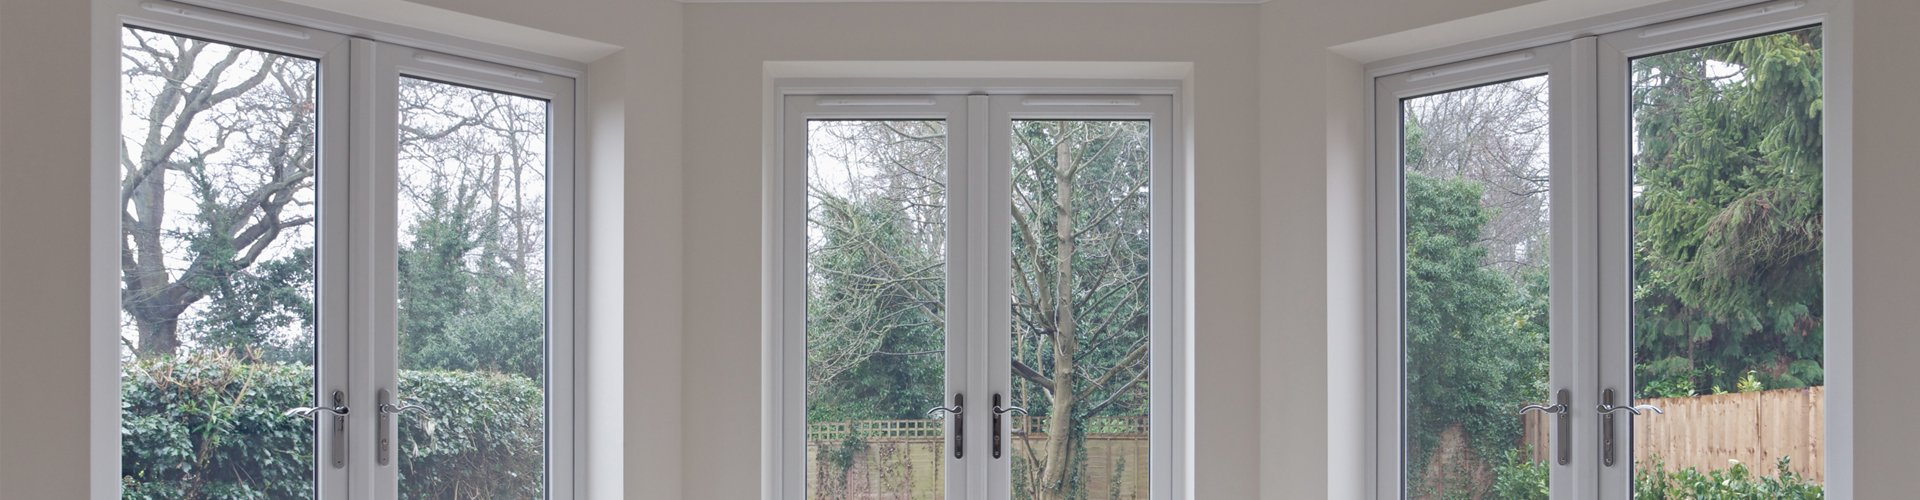 high quality glazing